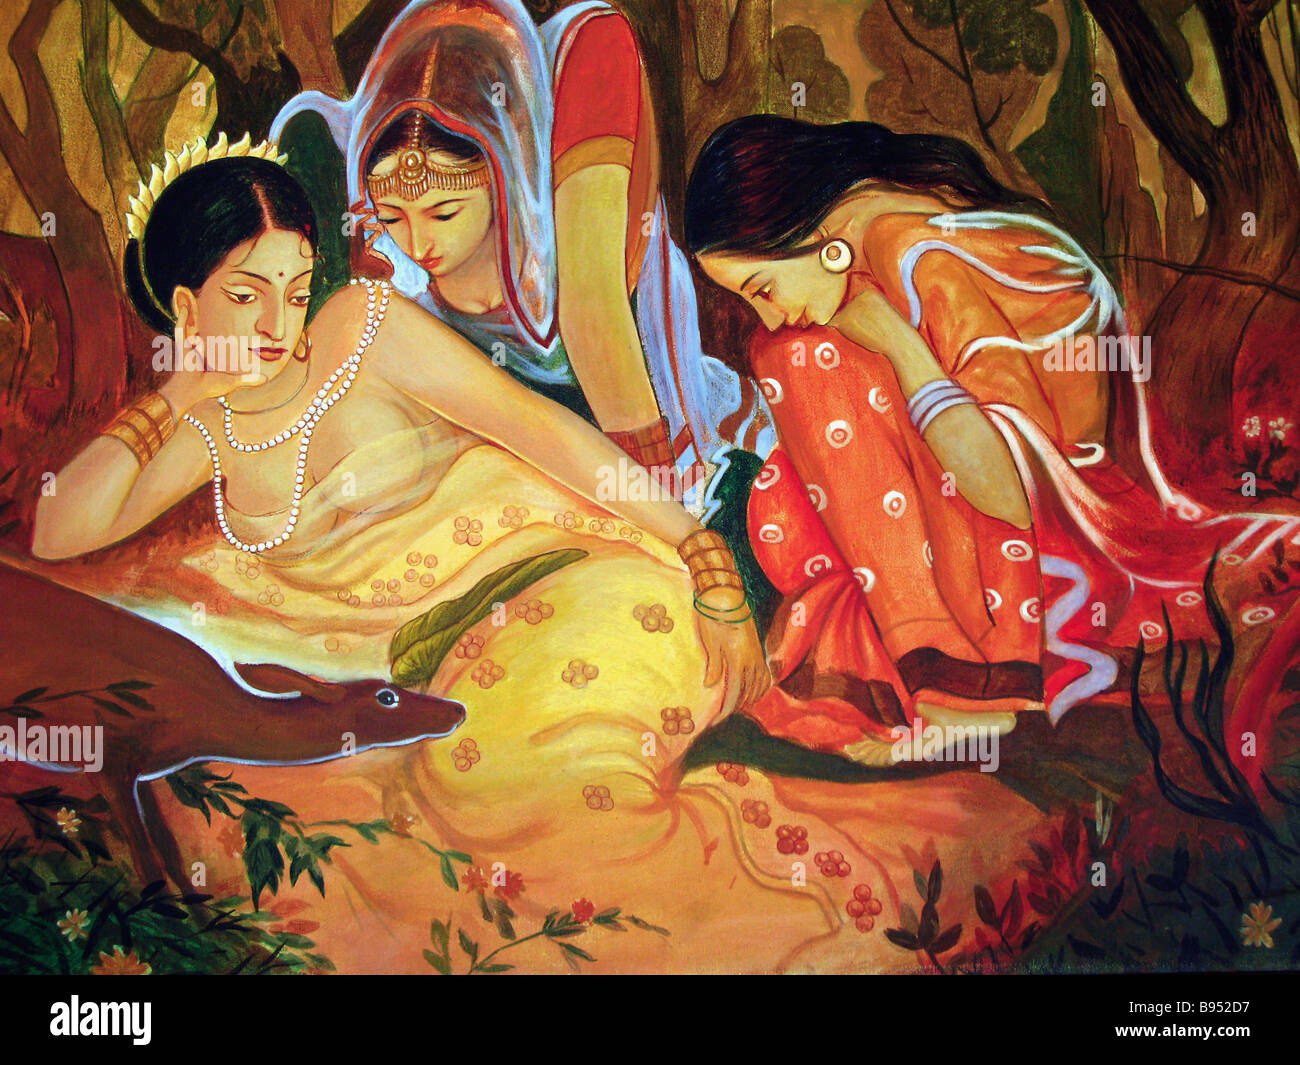 A painting by an Indian artist - Stock Image